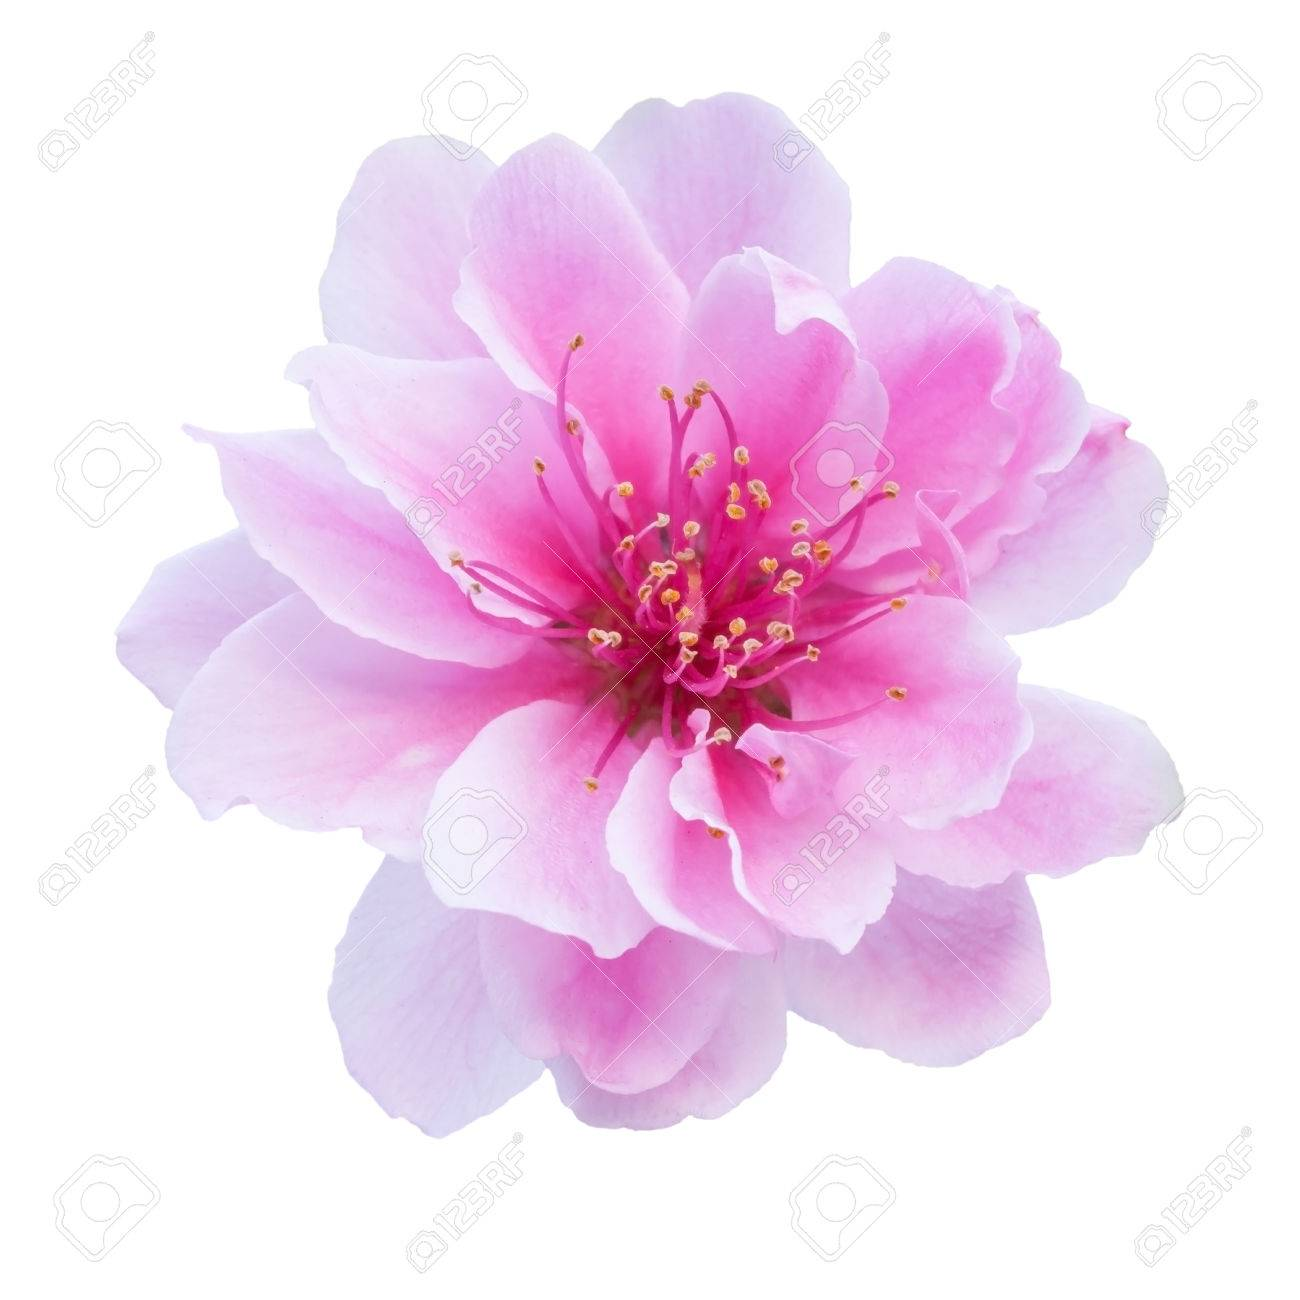 Pink cherry blossom isolated on white background stock photo pink cherry blossom isolated on white background stock photo 70960363 mightylinksfo